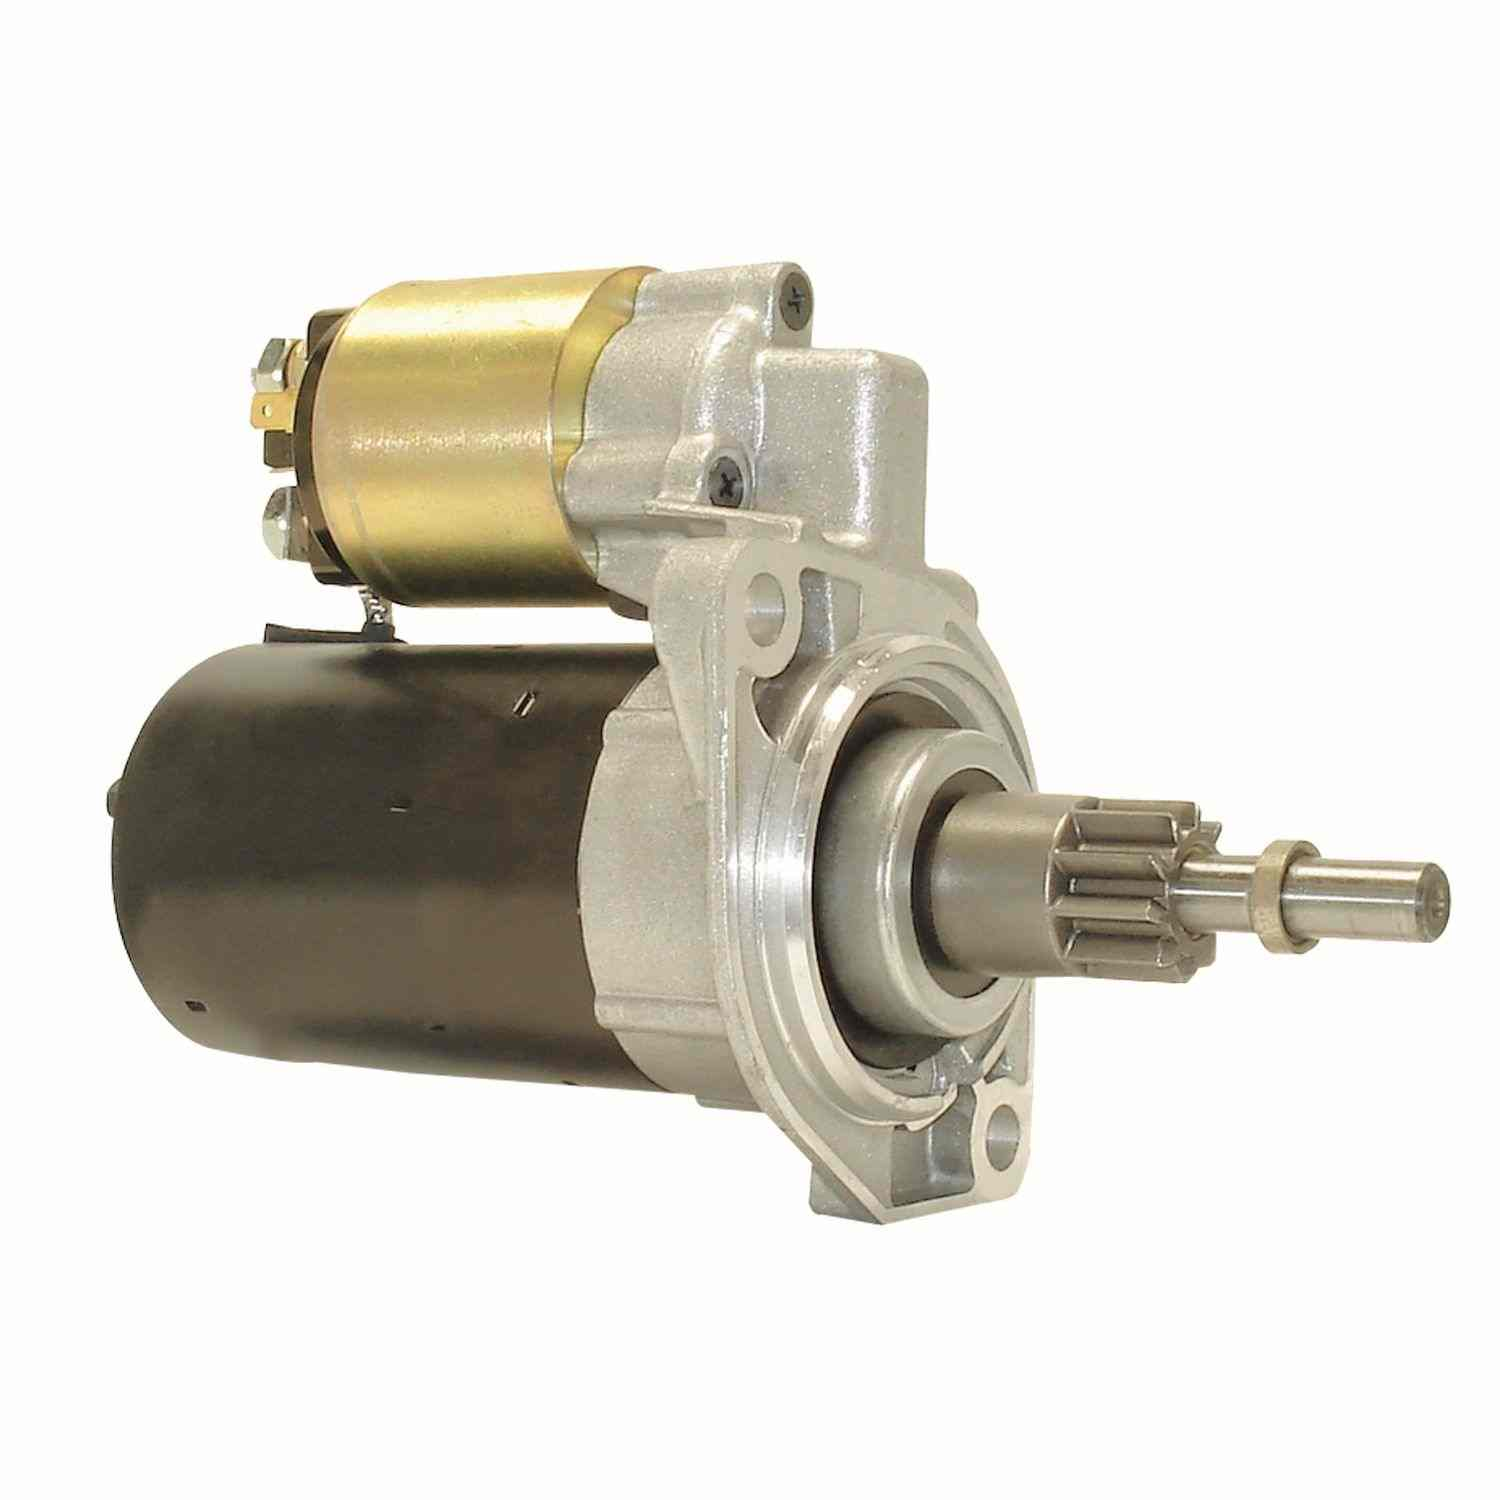 ACDELCO GOLD/PROFESSIONAL - Reman Starter Motor - DCC 336-1098